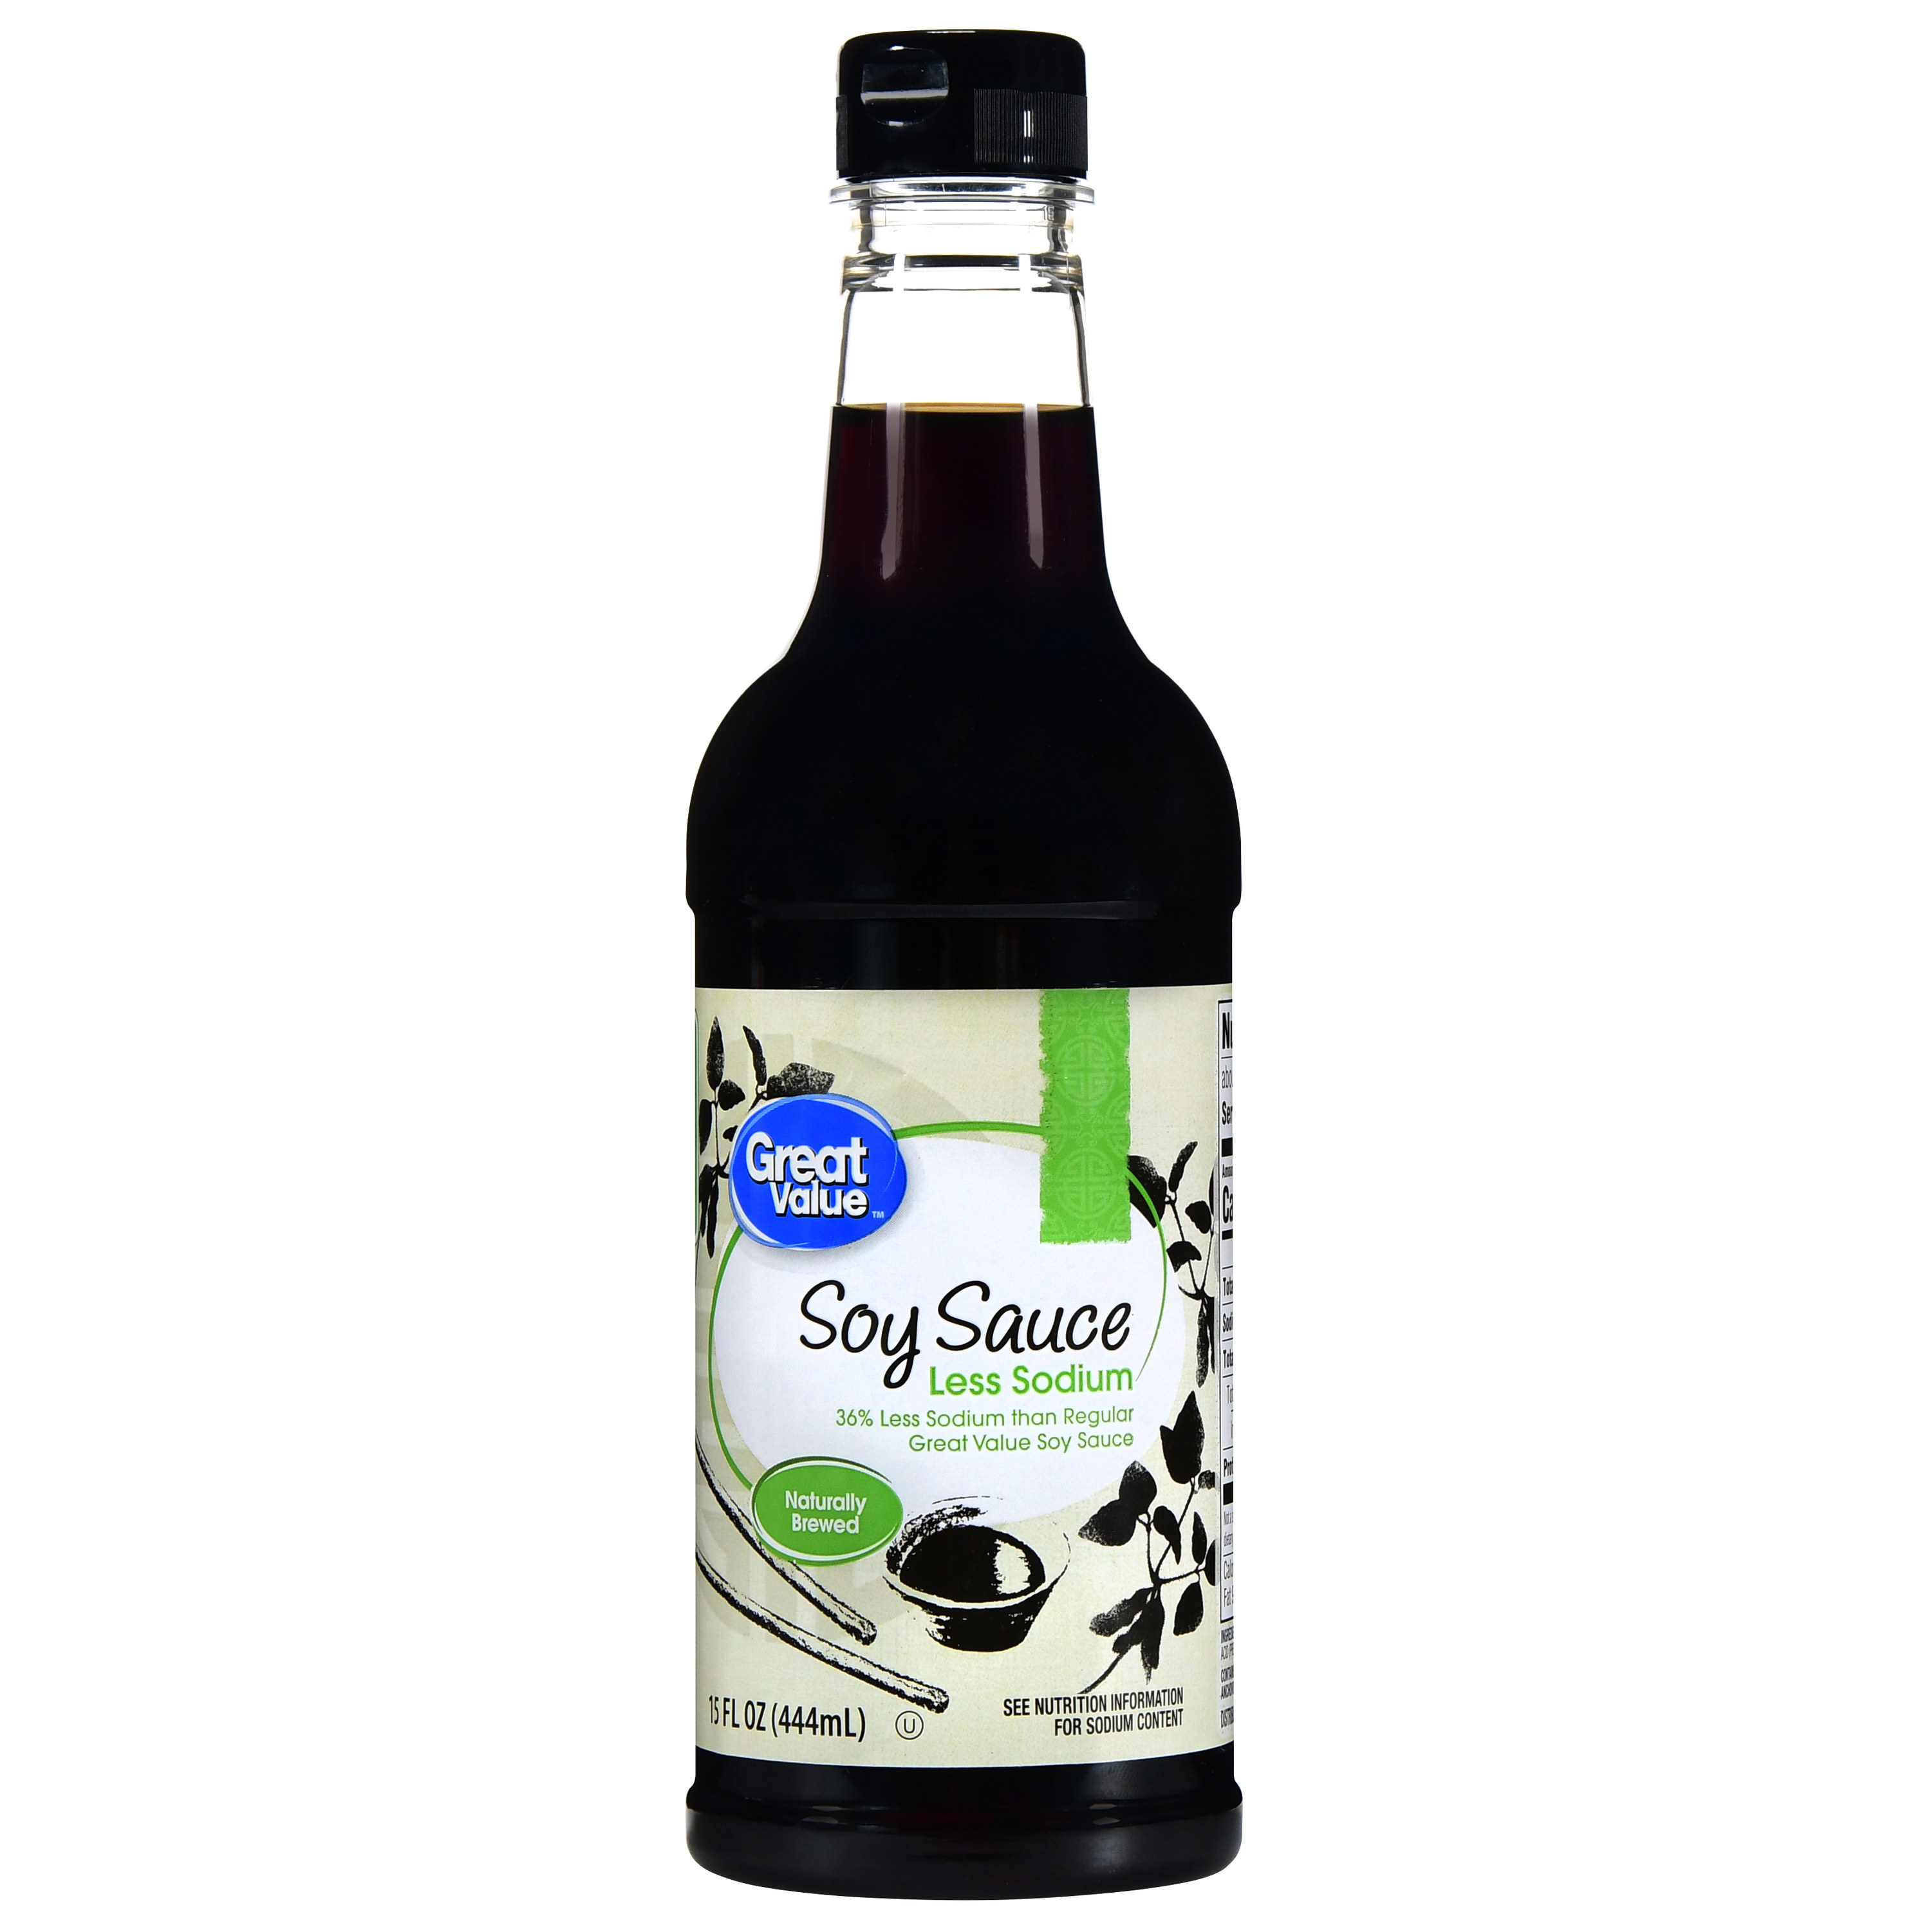 the bottle of soy sauce